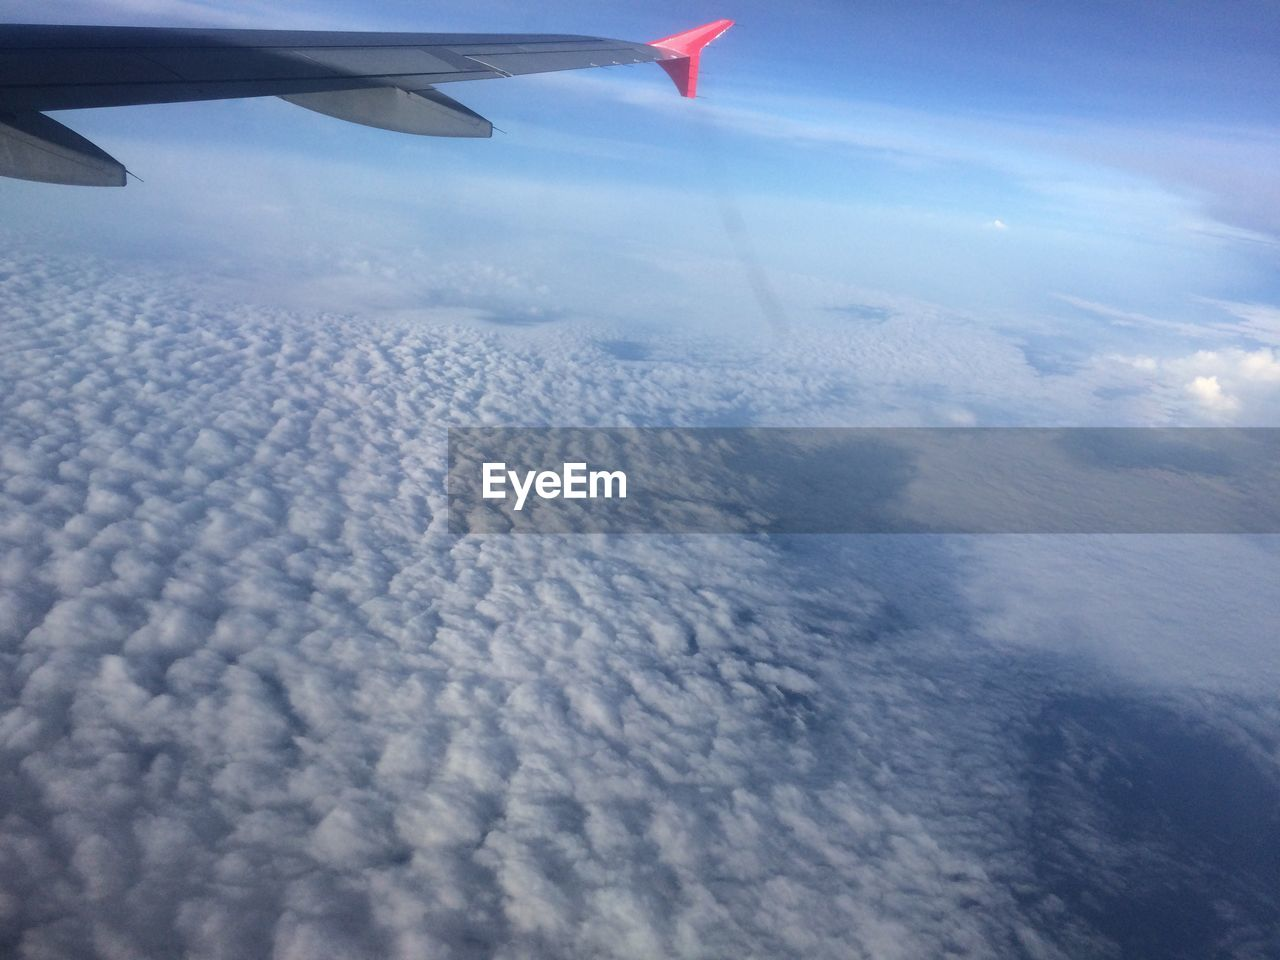 airplane, aerial view, transportation, flying, journey, airplane wing, aircraft wing, air vehicle, nature, mode of transport, no people, travel, mid-air, sky, beauty in nature, cloud - sky, day, landscape, scenics, outdoors, vehicle part, cold temperature